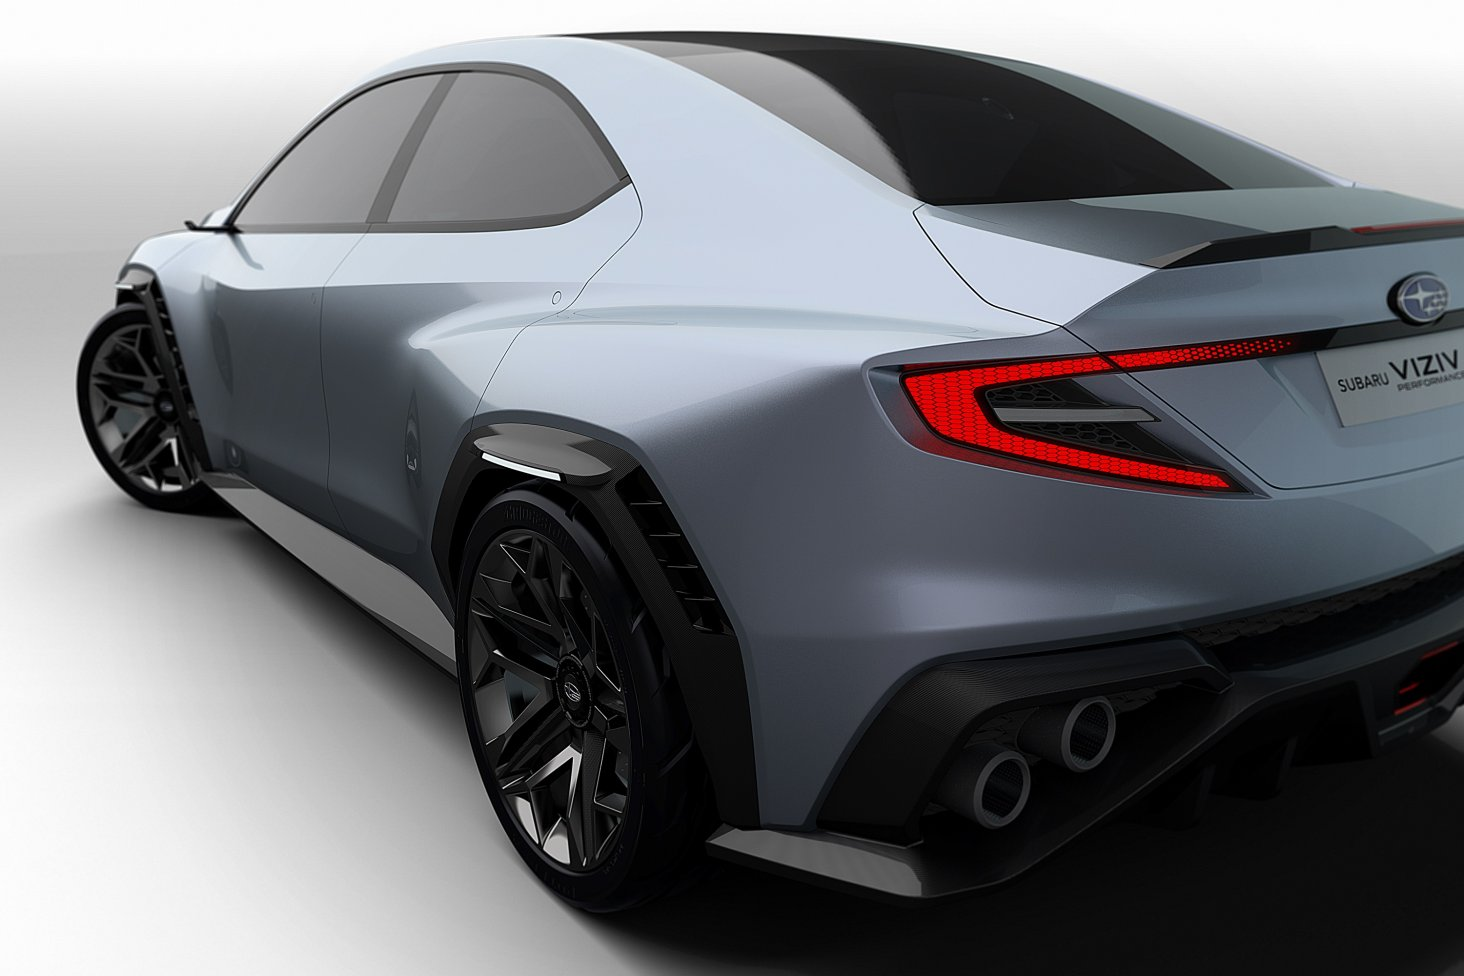 The Subaru VIZIV Performance Concept. Images free for editorial use.